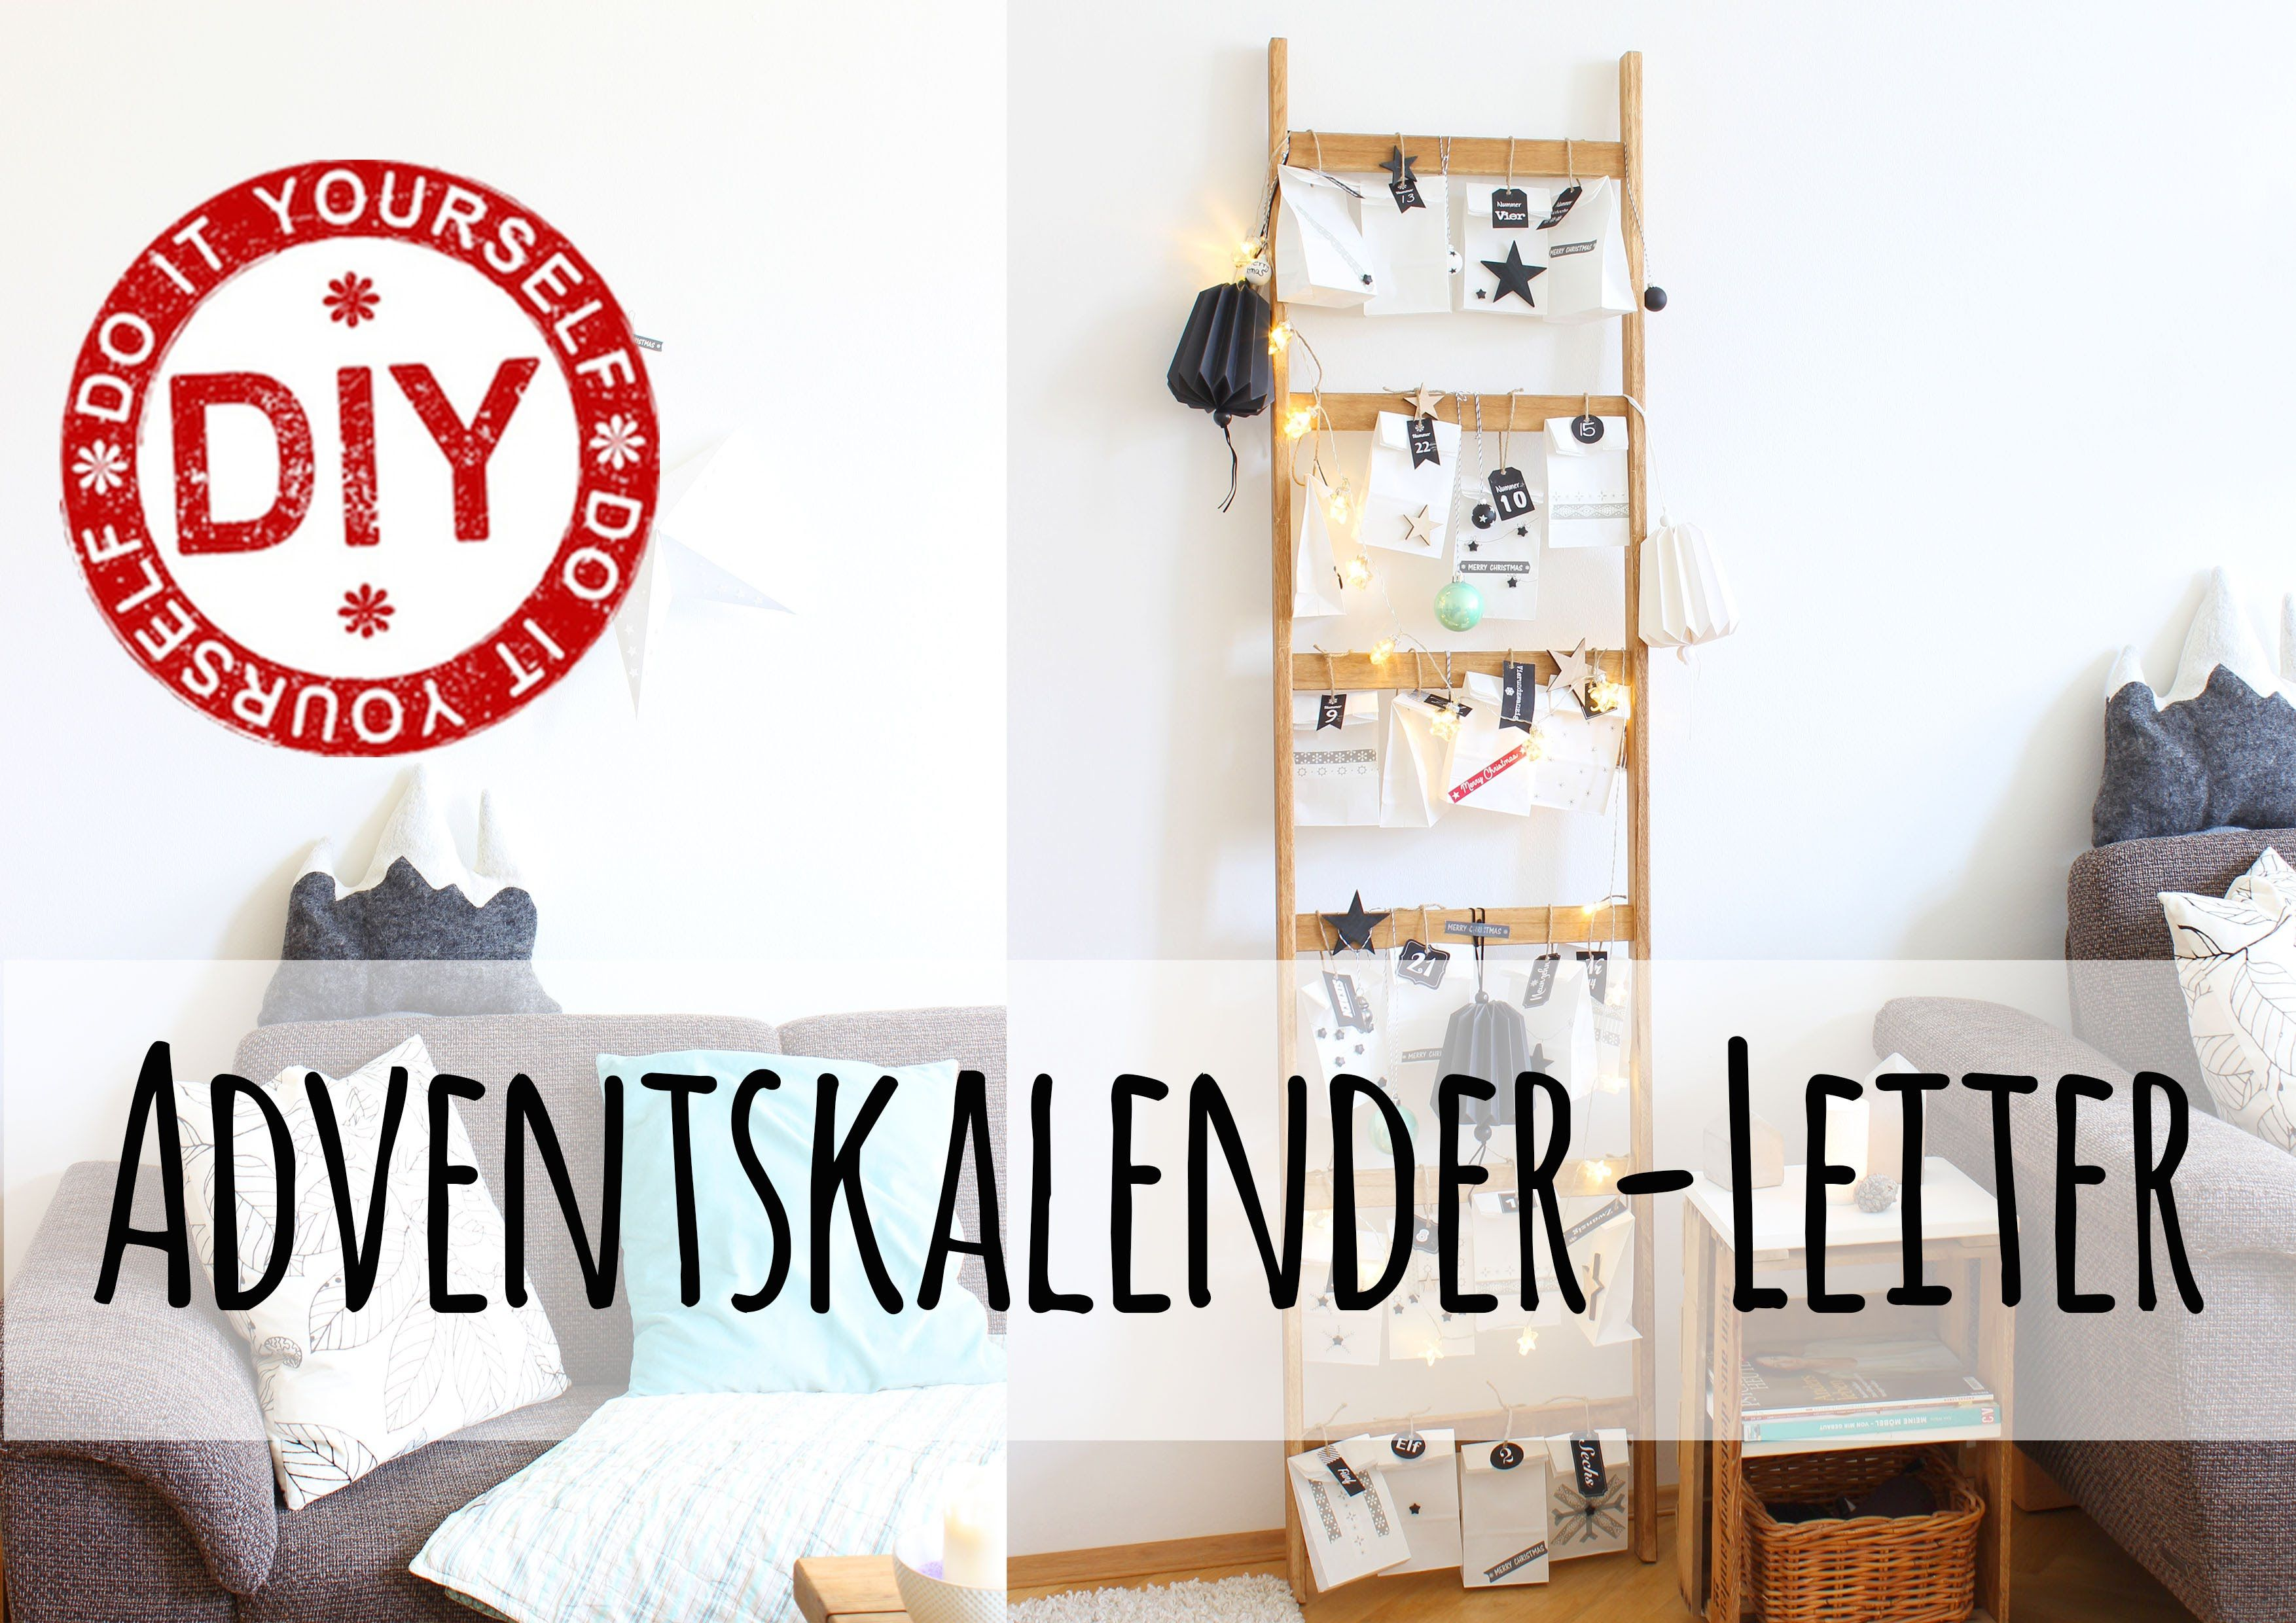 adventskalender i leiter bauen i deko inspirationen i mrs shabby chic i diy winter i. Black Bedroom Furniture Sets. Home Design Ideas